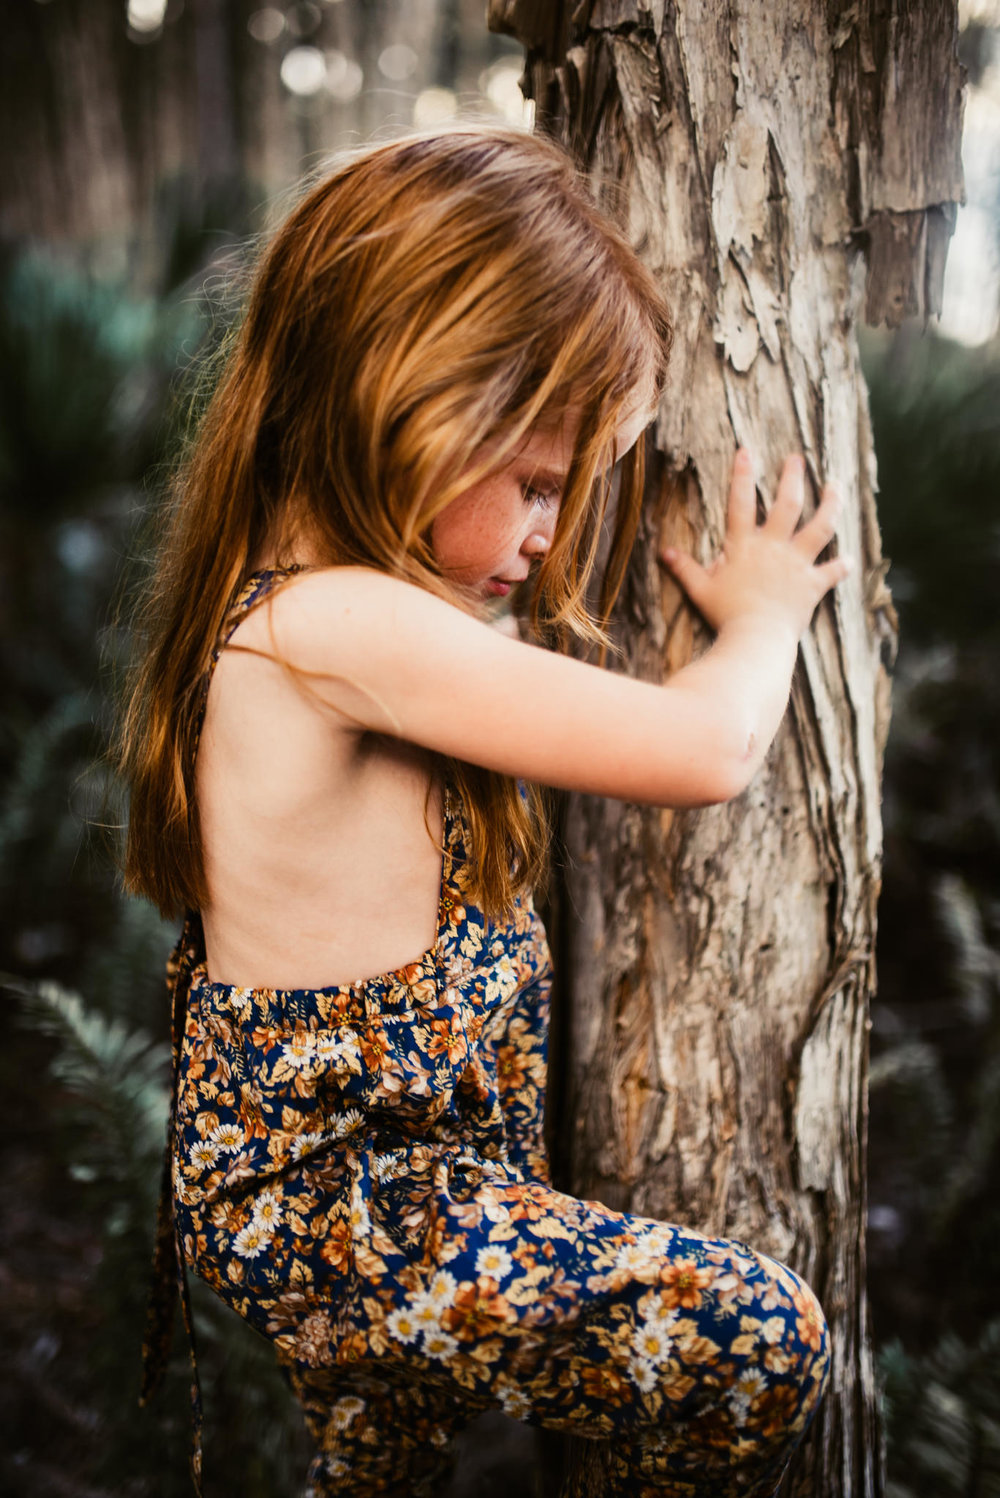 twyla jones photography - treasure coast florida - childrens adventure clothing commercial shoot--41.jpg